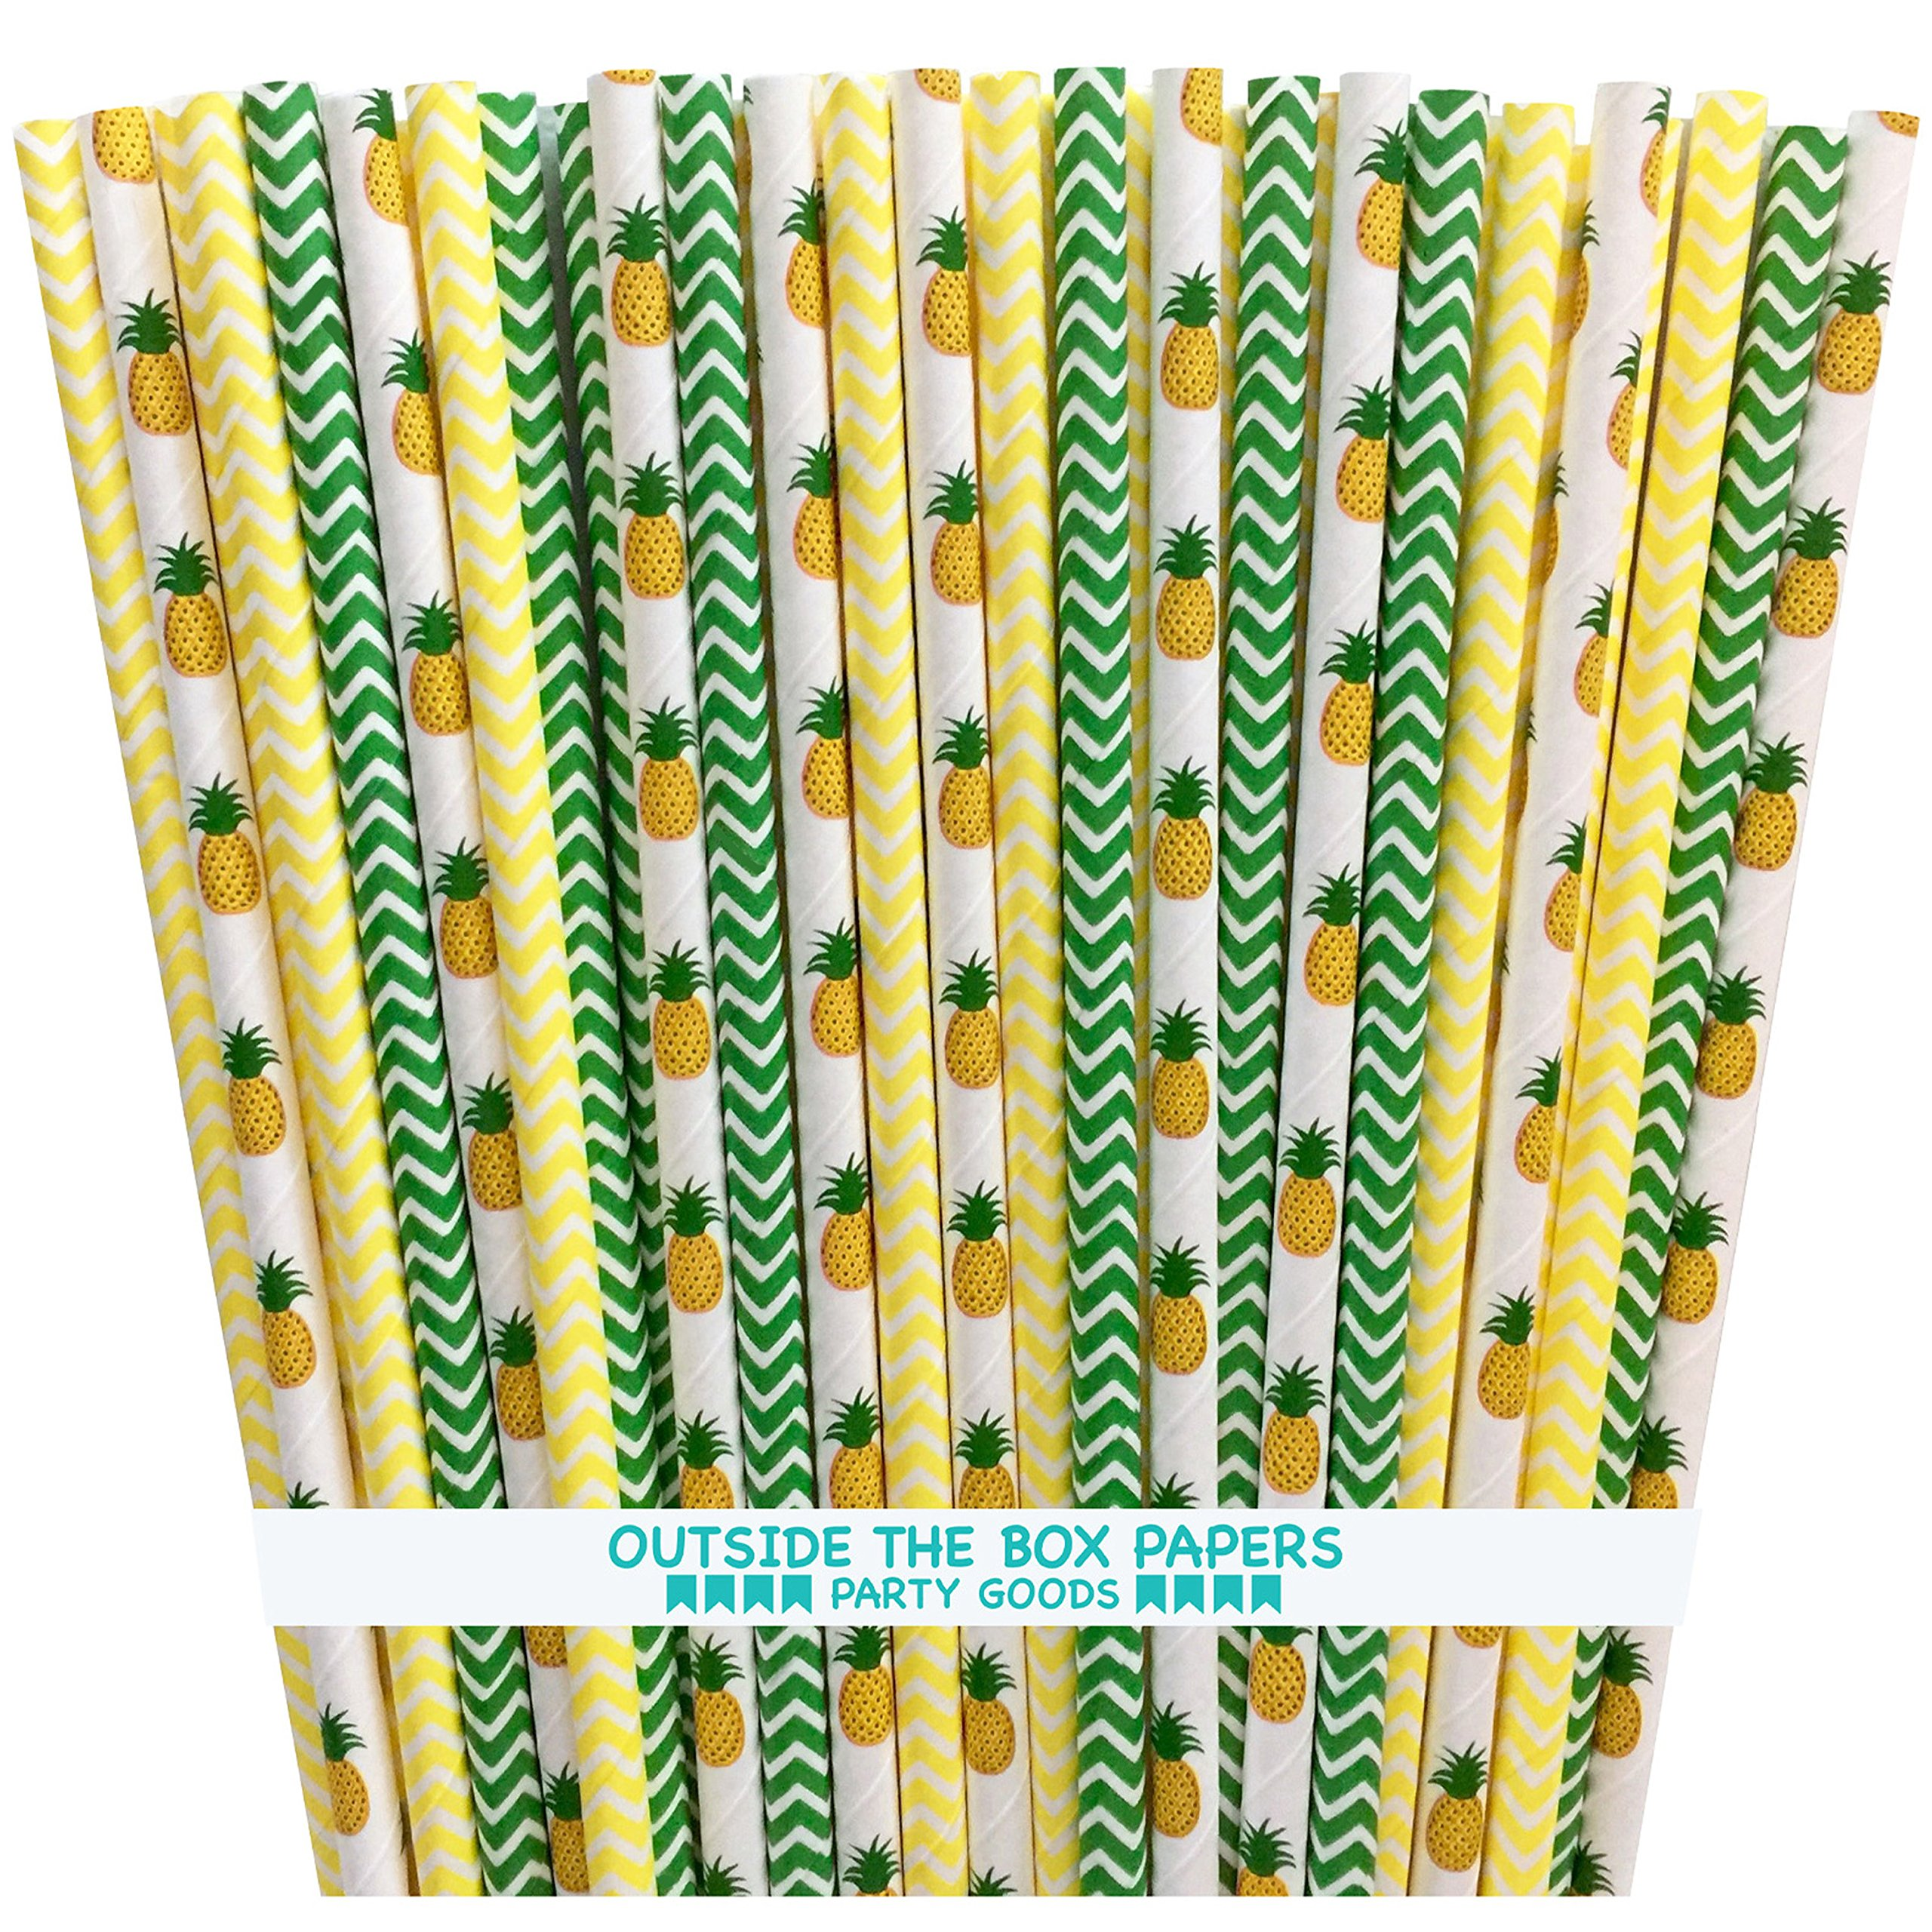 Pineapple Themed and Chevron Paper Straws - Green Yellow White - 7.75 Inches - 100 Pack